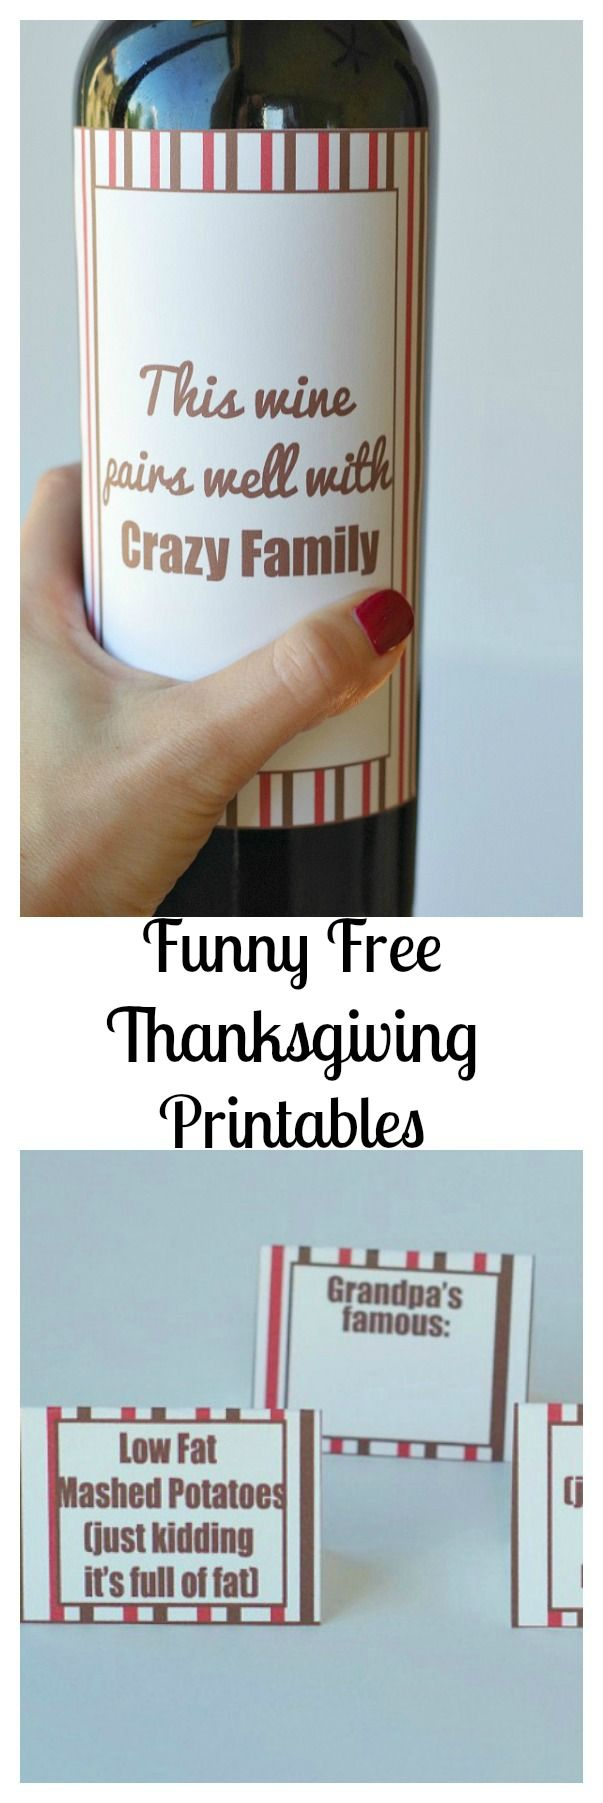 Funny free Thanksgiving printables   Val Event Gal   Pinterest ...